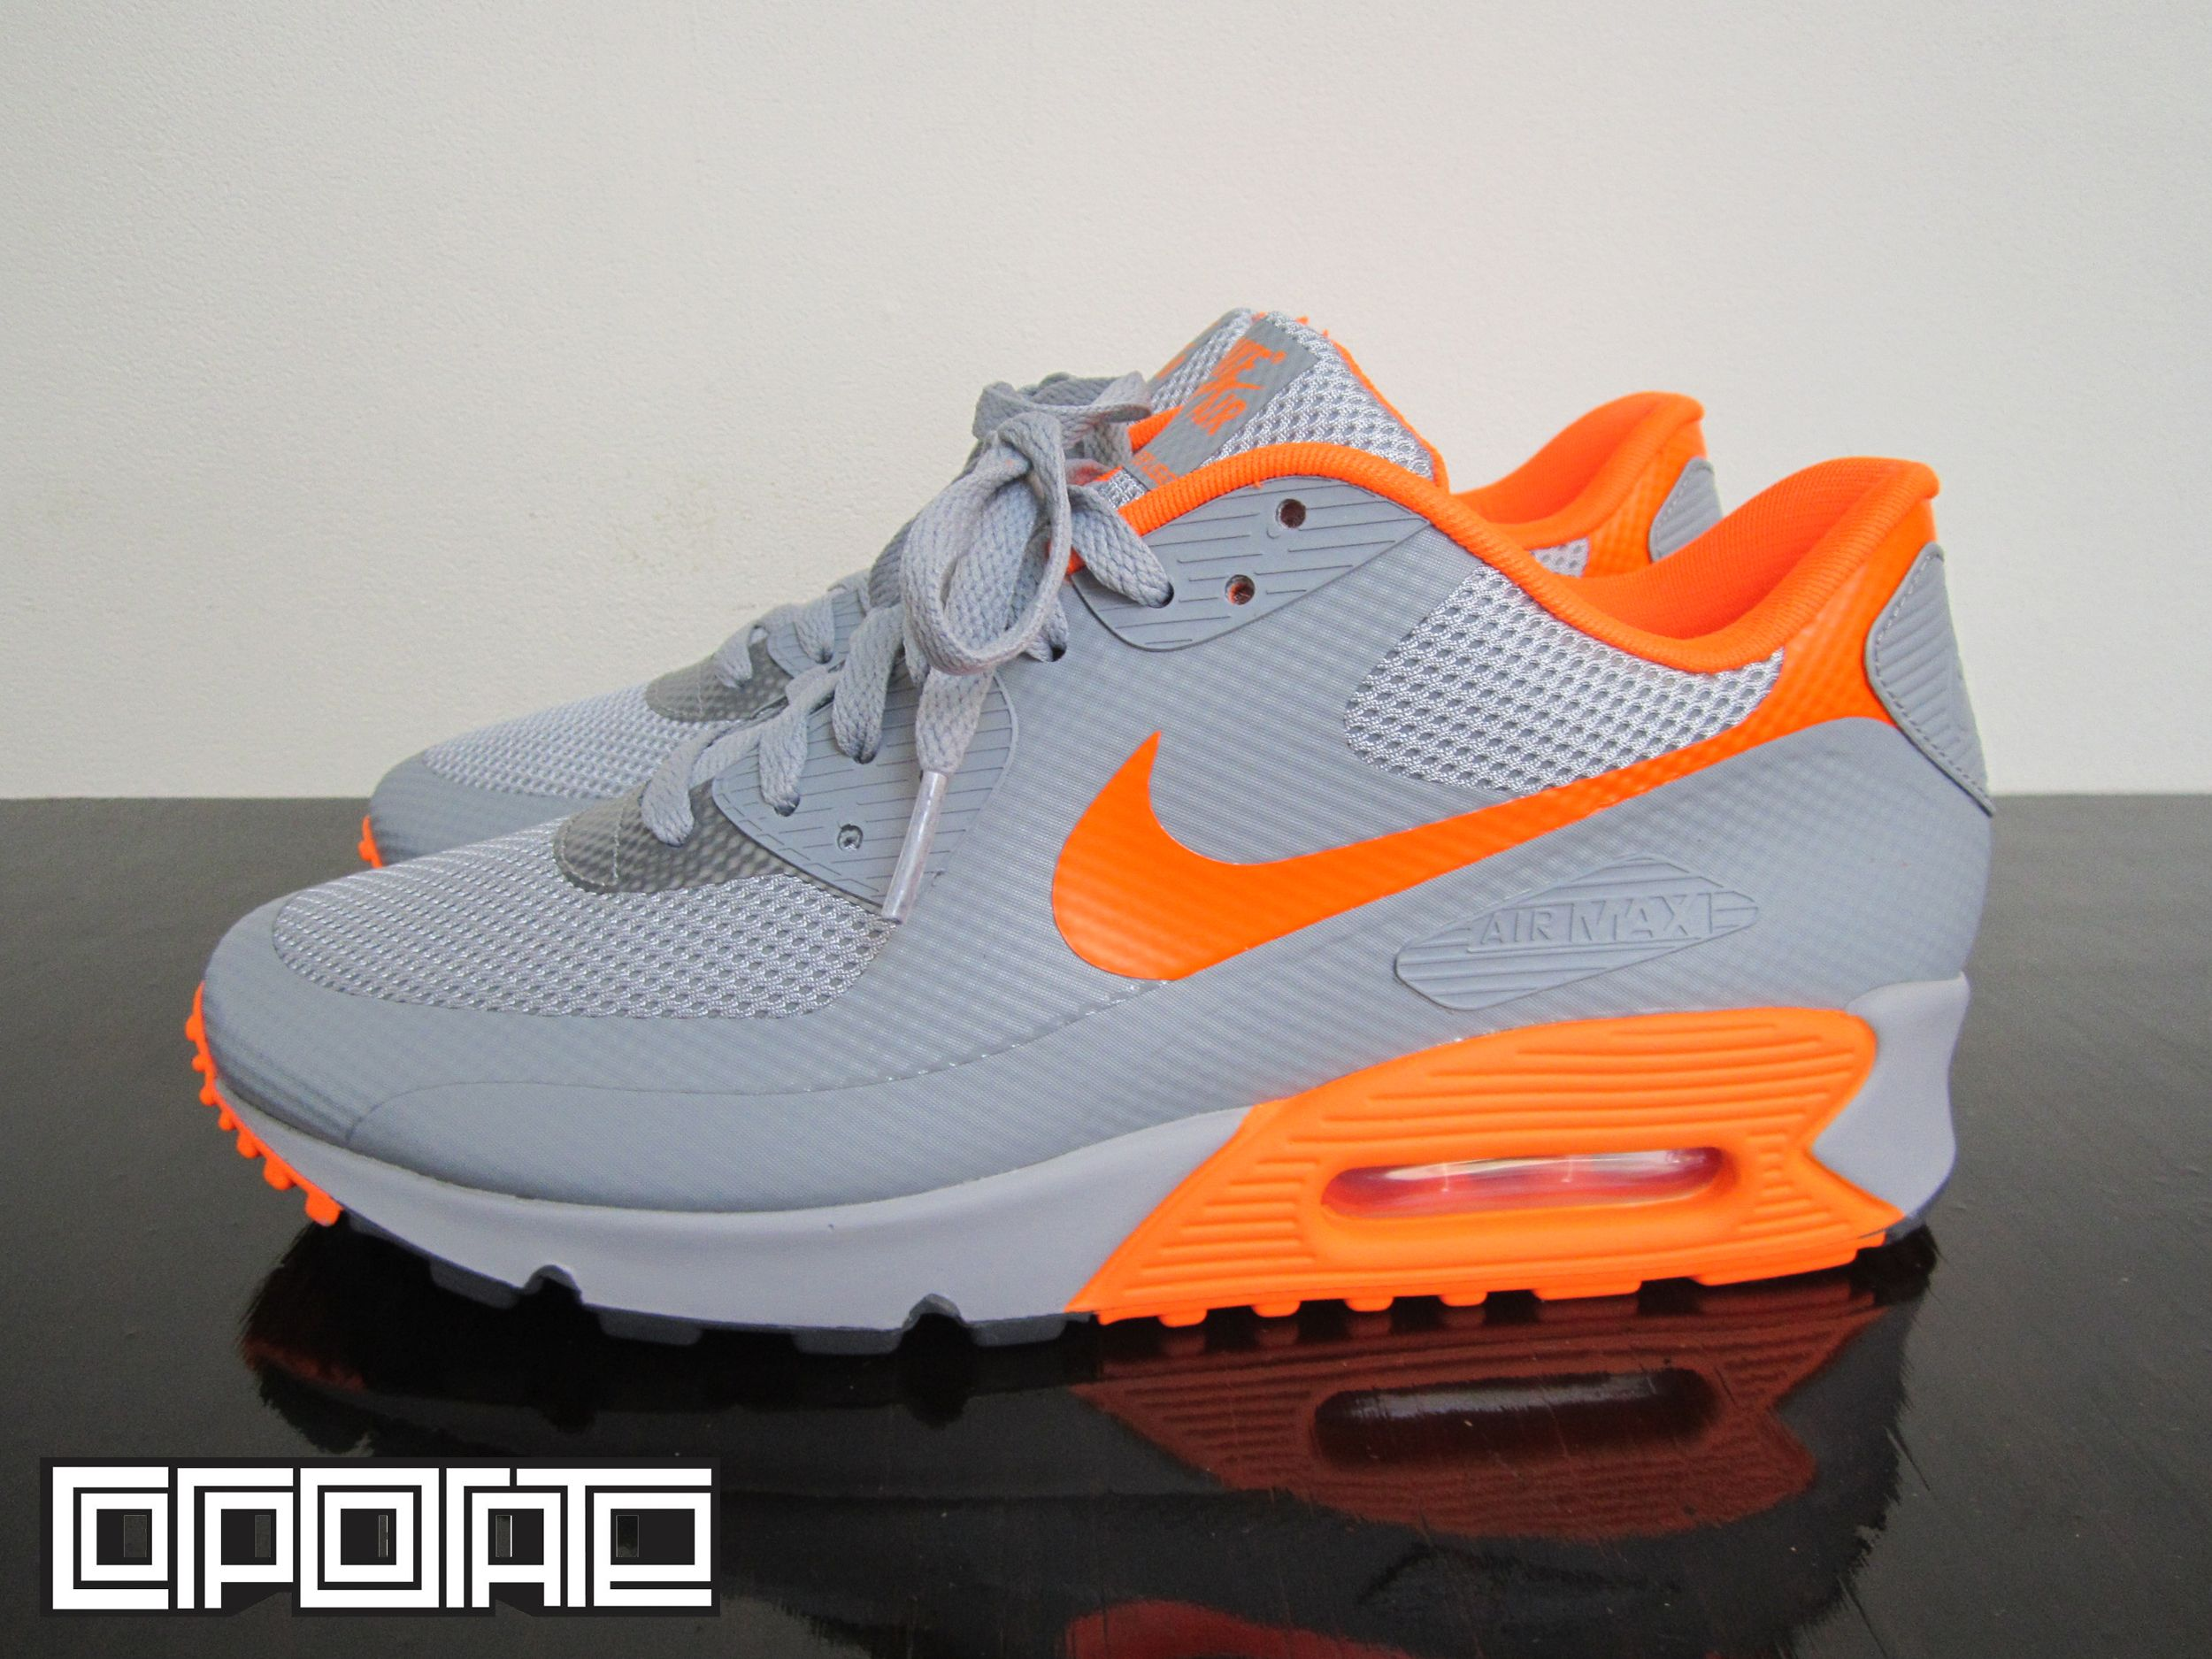 The latest Nike Air Max 90 Hyperfuse takes on a summer look with the use of  Grey/Orange with Hyperfuse panels and mesh.